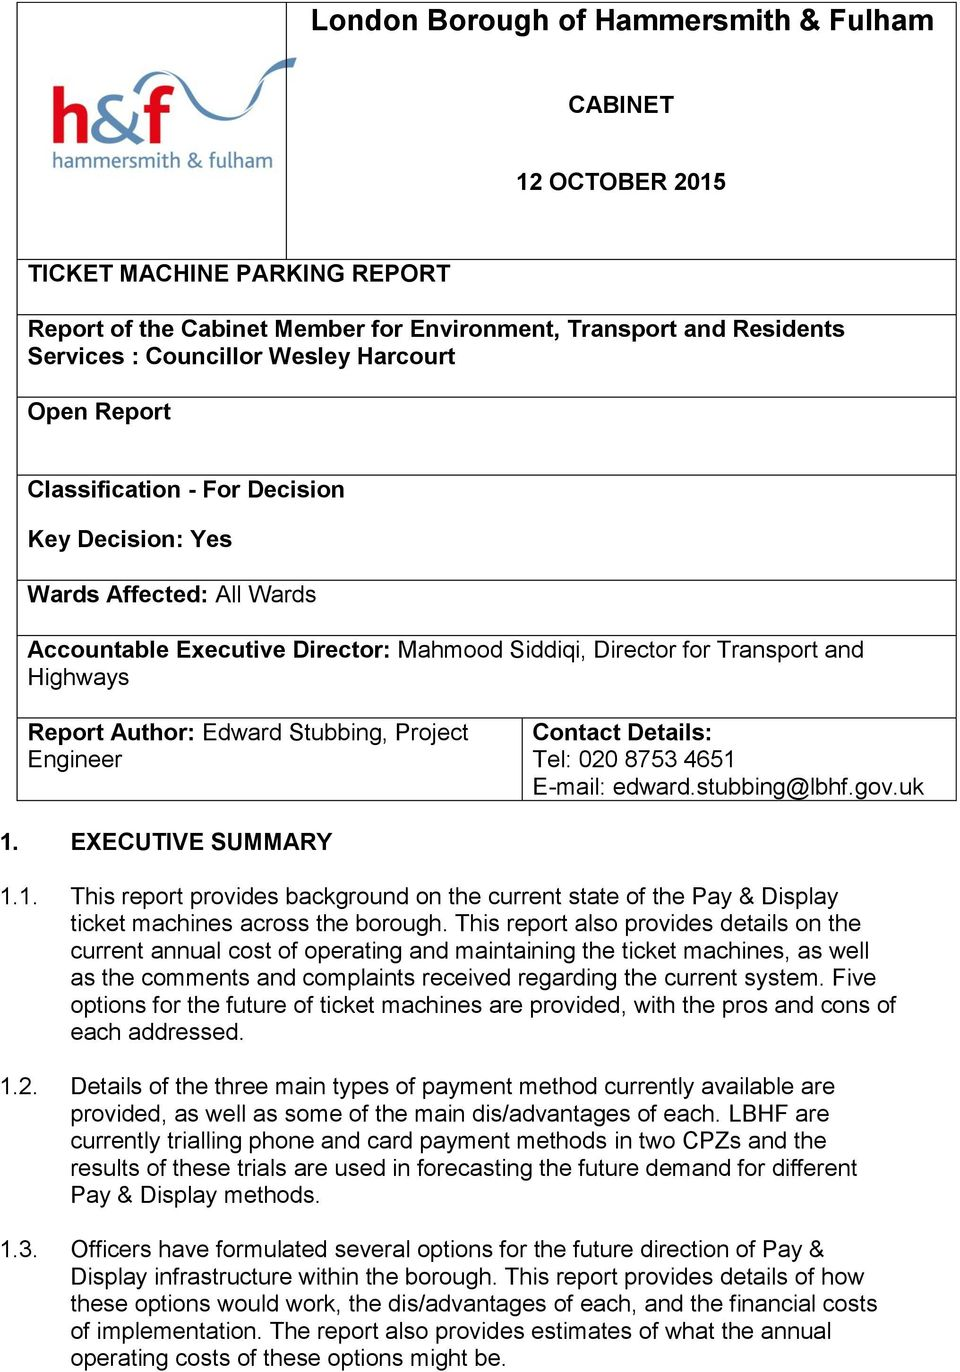 Edward Stubbing, Project Engineer Contact Details: Tel: 020 8753 4651 E-mail: edward.stubbing@lbhf.gov.uk 1. EXECUTIVE SUMMARY 1.1. This report provides background on the current state of the Pay & Display ticket machines across the borough.